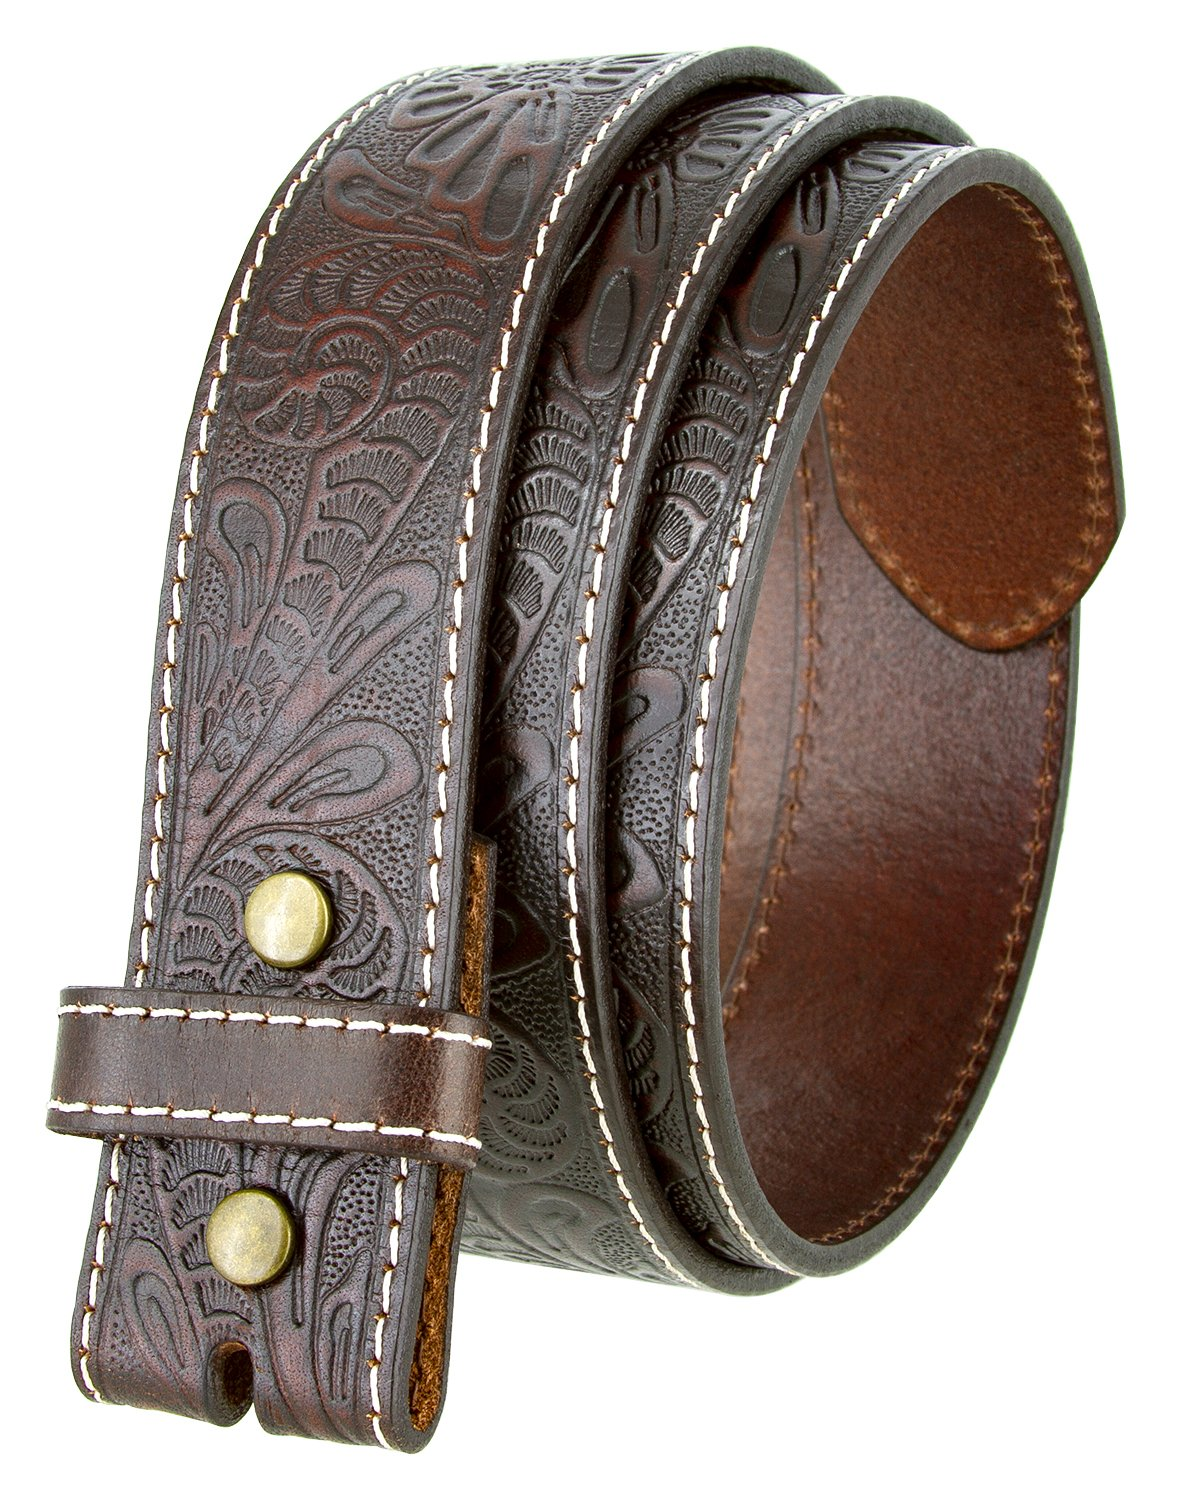 Western Floral Engraved Tooled Leather Belt Strap 1-1/2 (Brown,34)